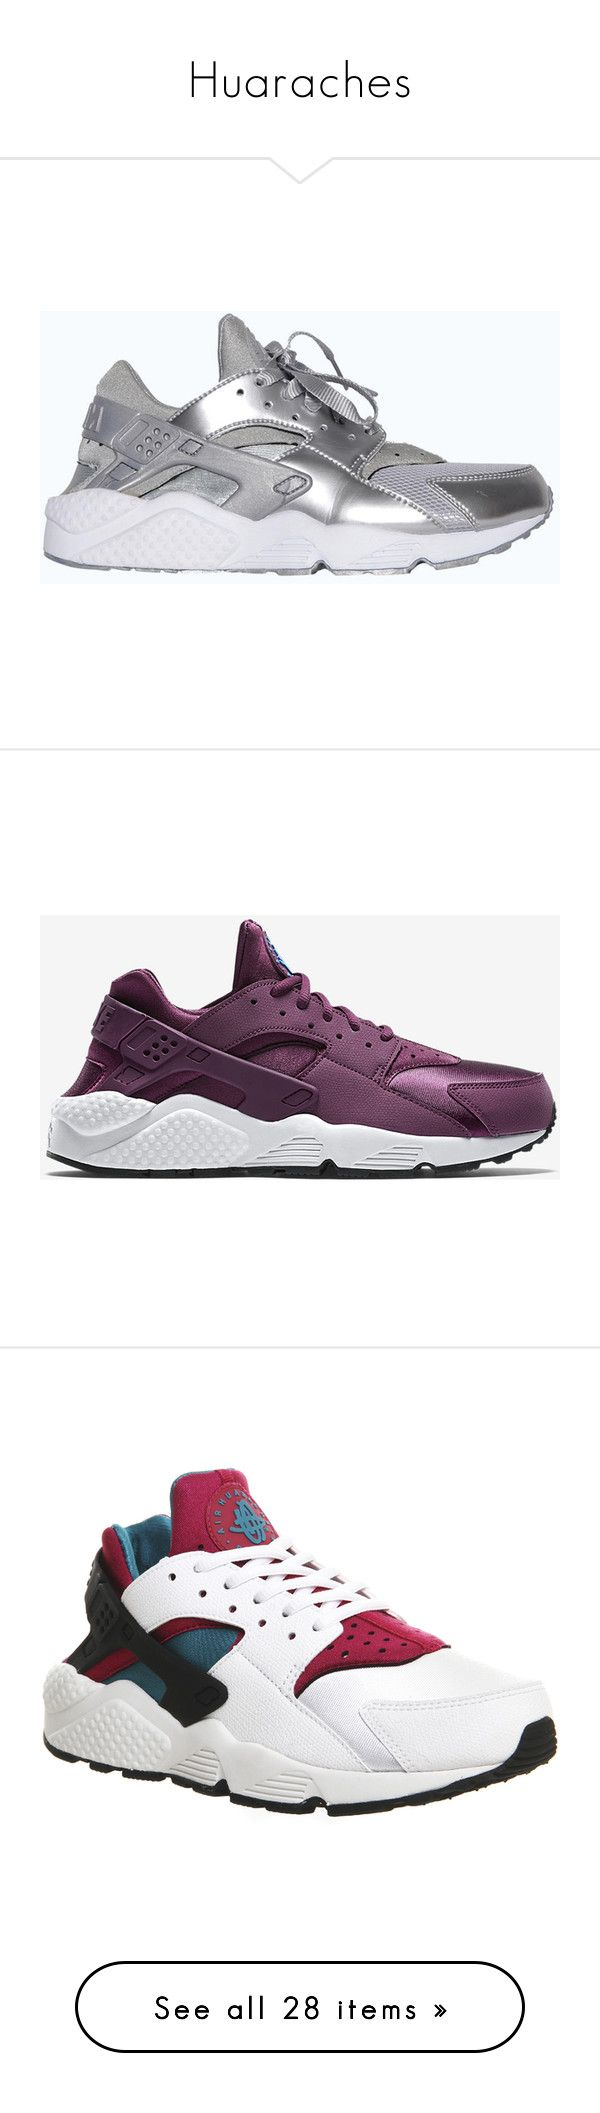 """""""Huaraches"""" by queen-peaches ❤ liked on Polyvore featuring shoes, nike, sneakers, huarache, lace up flat shoes, nike trainers, woven shoes, lacing sneakers, black and white trainer and huaraches"""